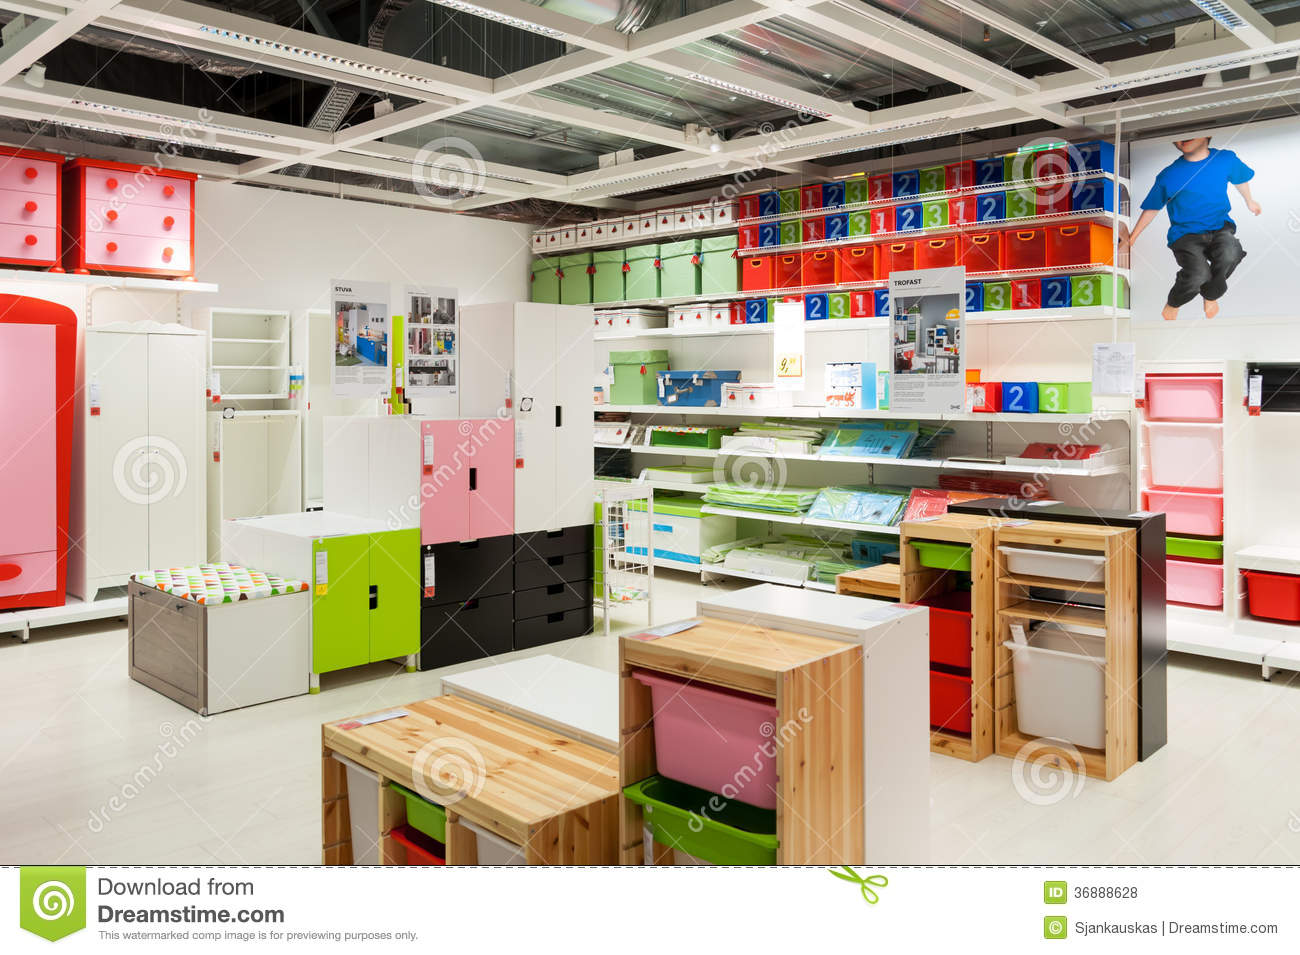 Ikea Furniture Store Kids Zone Editorial Stock Photo Image Of Center Homely 36888628